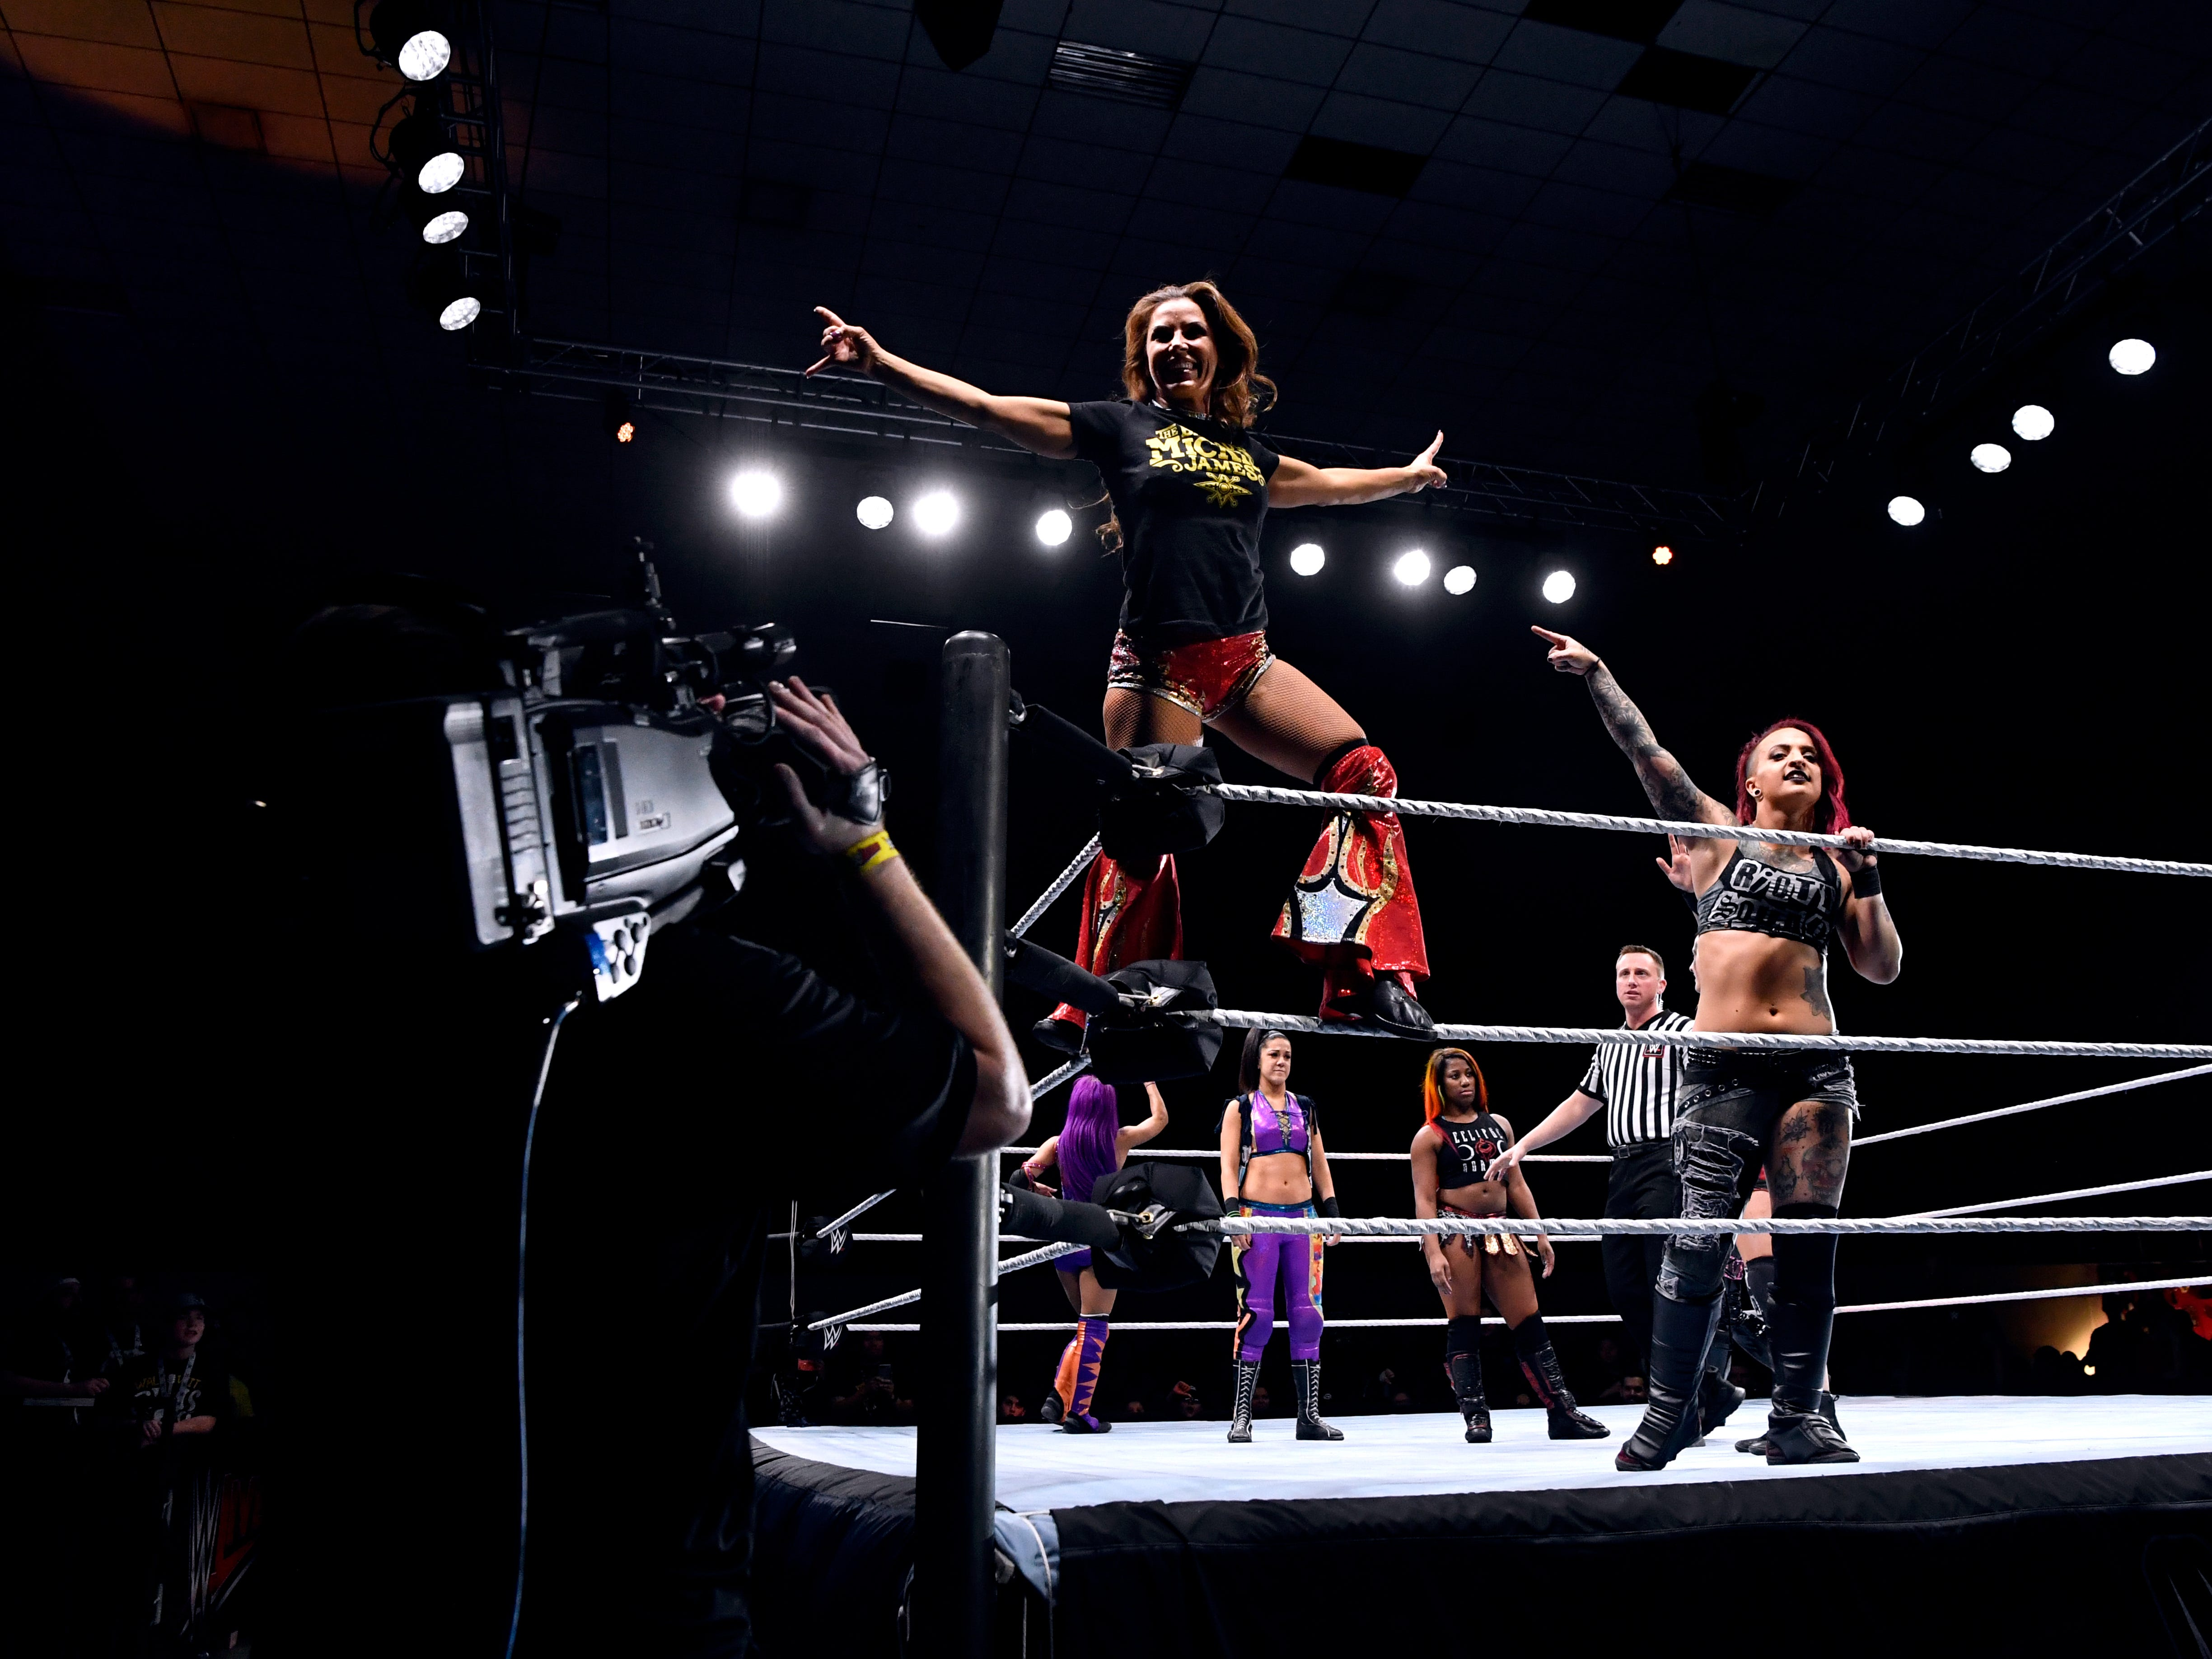 Ruby Riott points to Mickie James standing on the corner ropes before the start of a women's match during Saturday's WWE Live wrestling event Jan. 19, 2019. Held at the Taylor County Coliseum, the evening featured a colorful array of World Wrestling Entertainment stars.